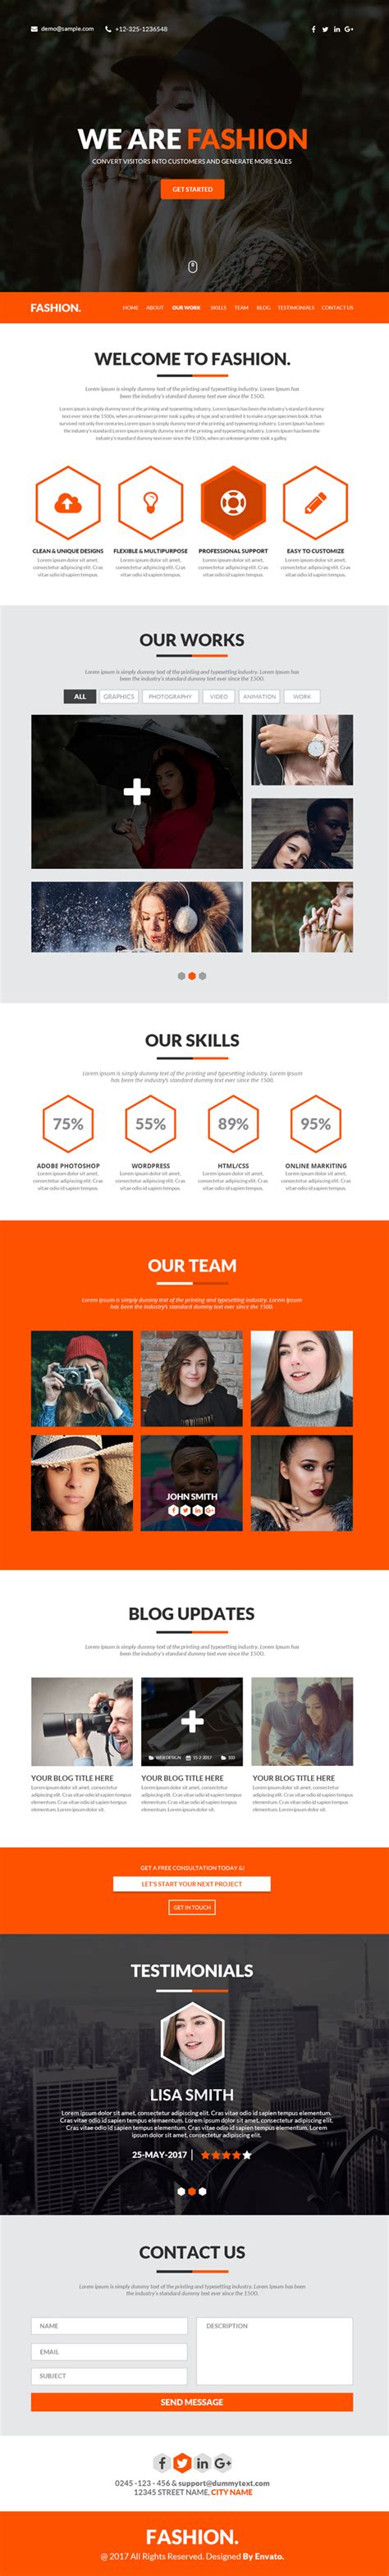 single page phlet templates best single page web templates web design graphic